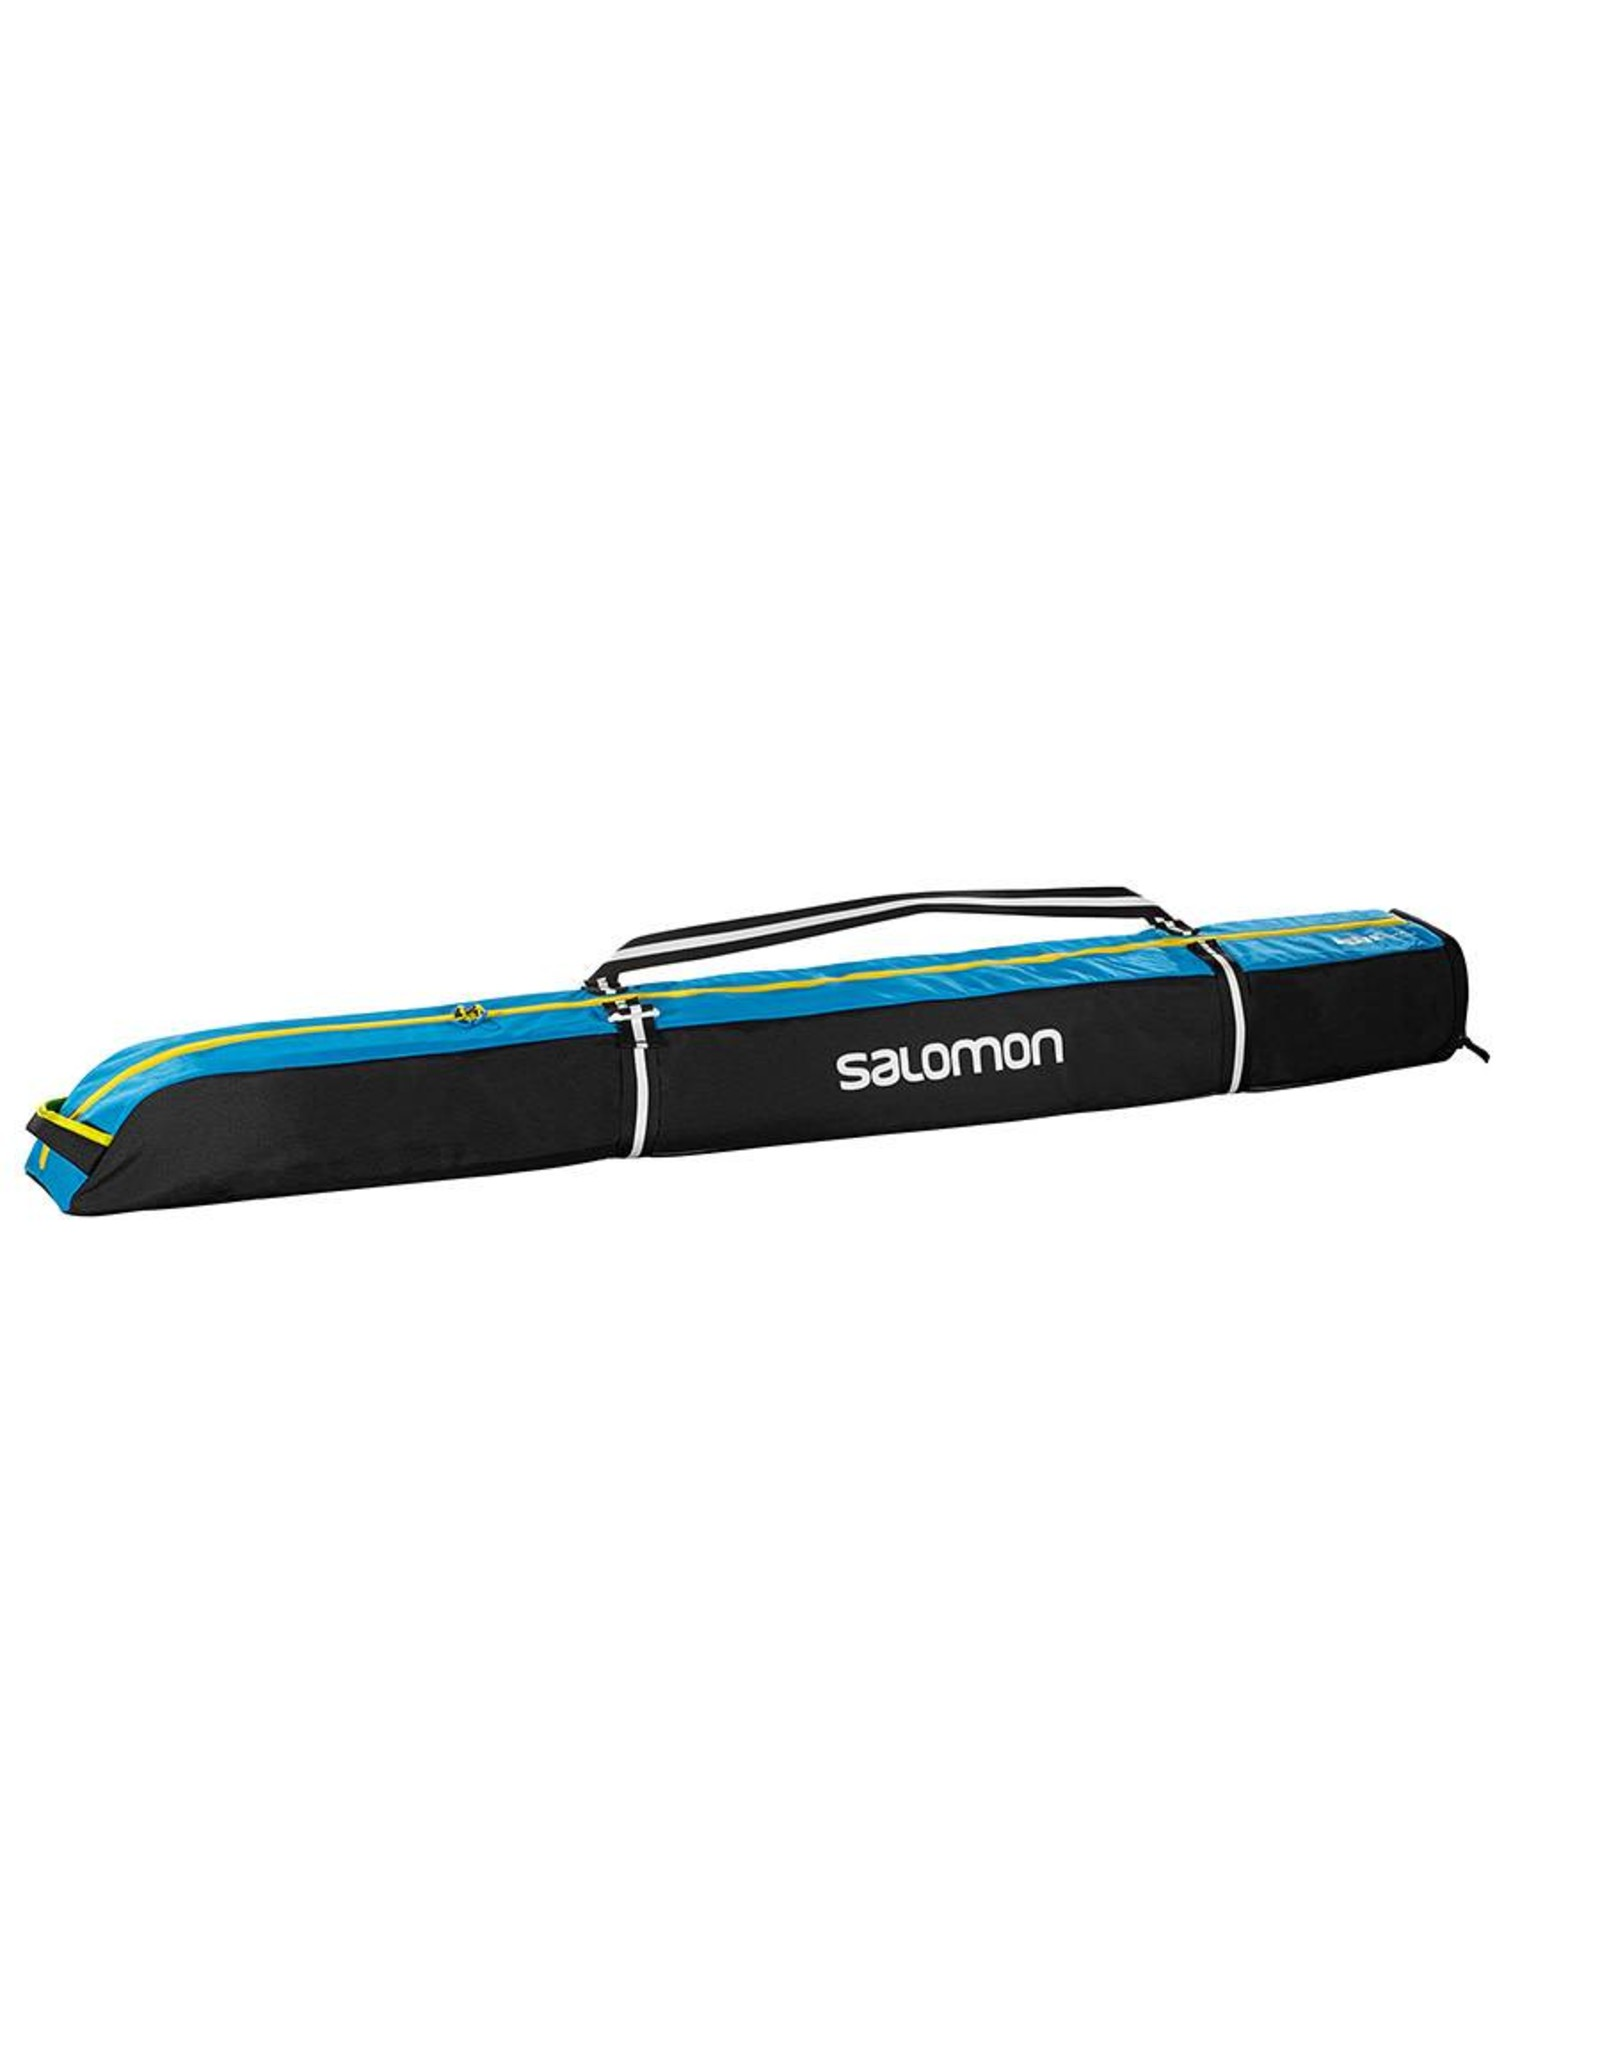 Salomon Salomon Extend 1P Ski bag 165 + 20 F17